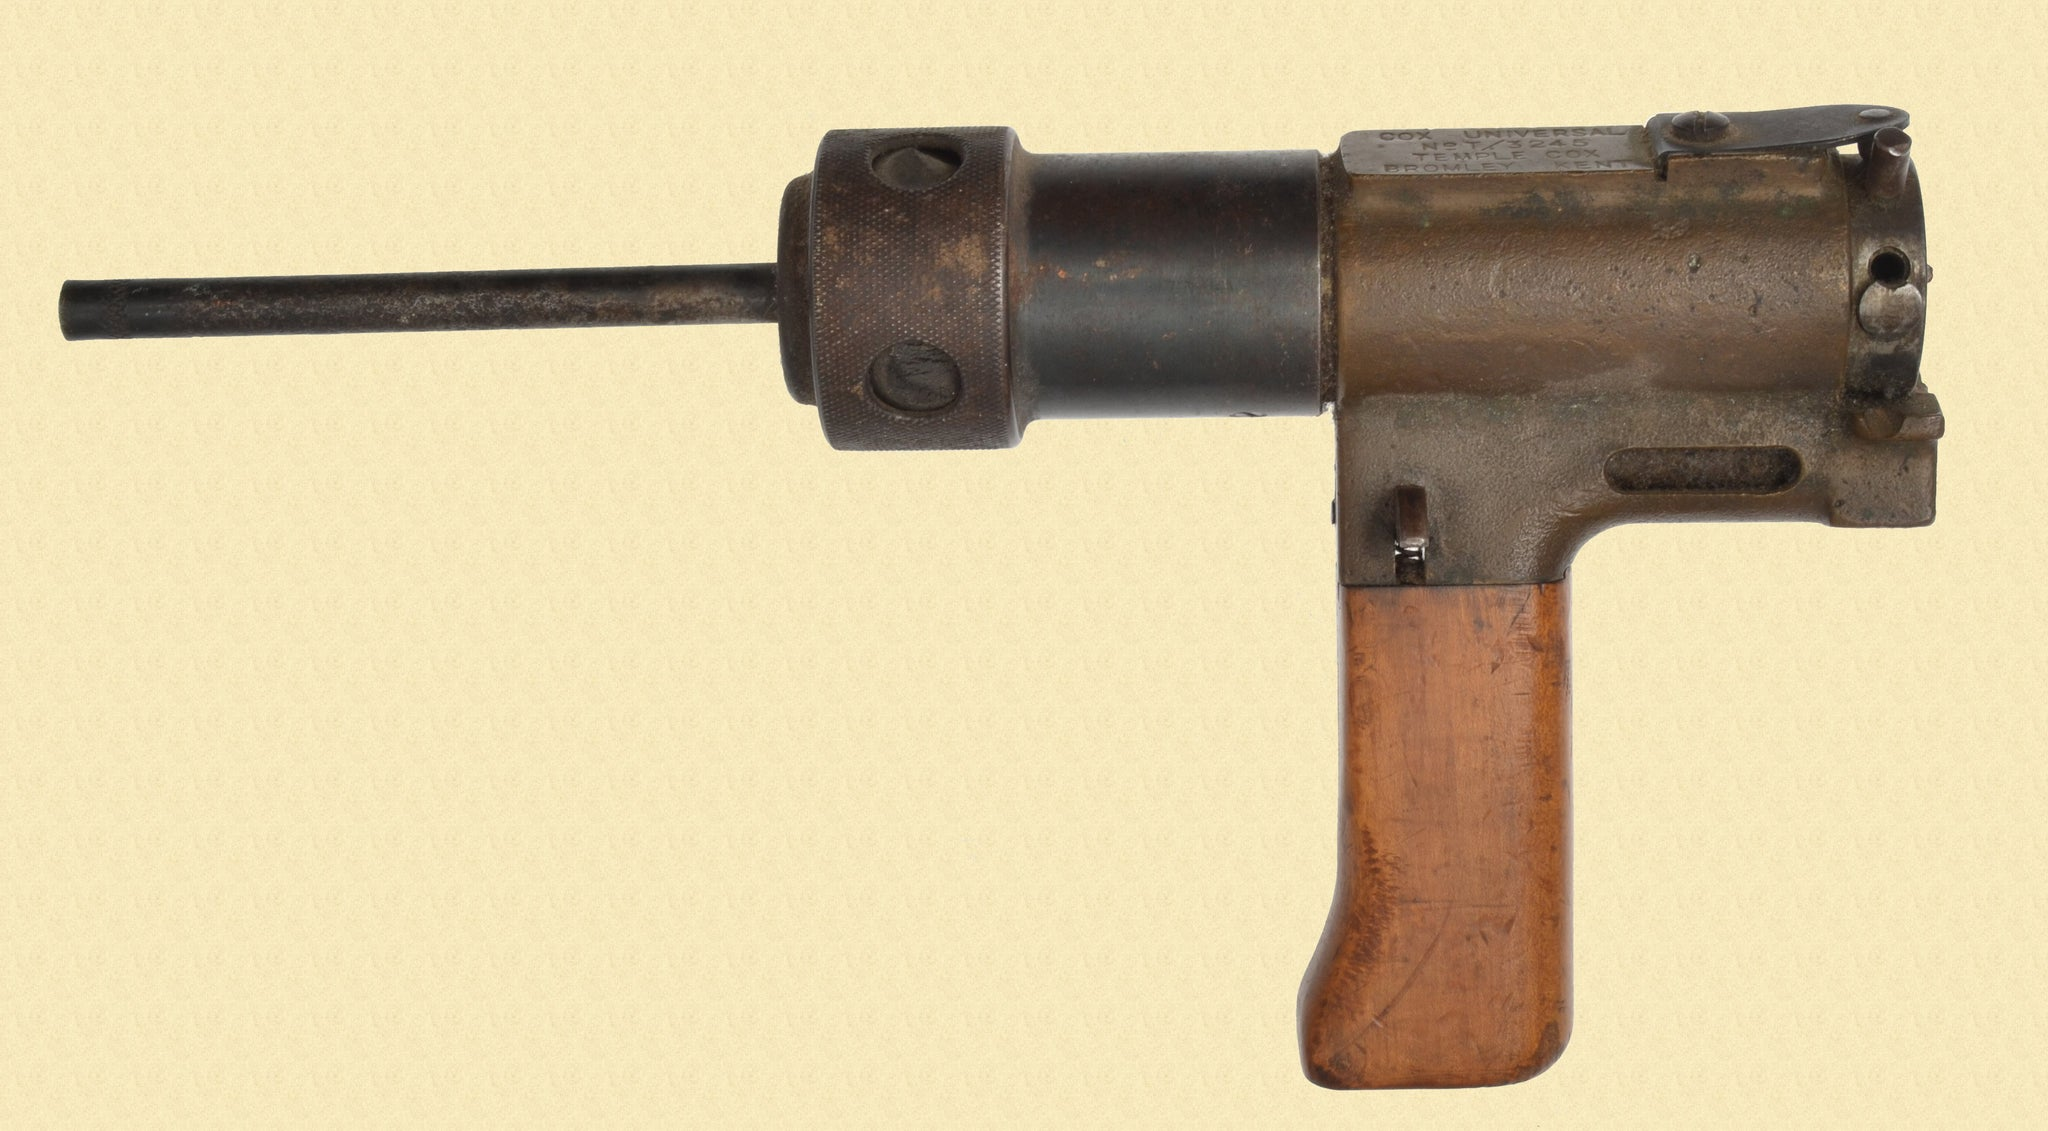 TEMPLE COX CAPTIVE BOLT PISTOL